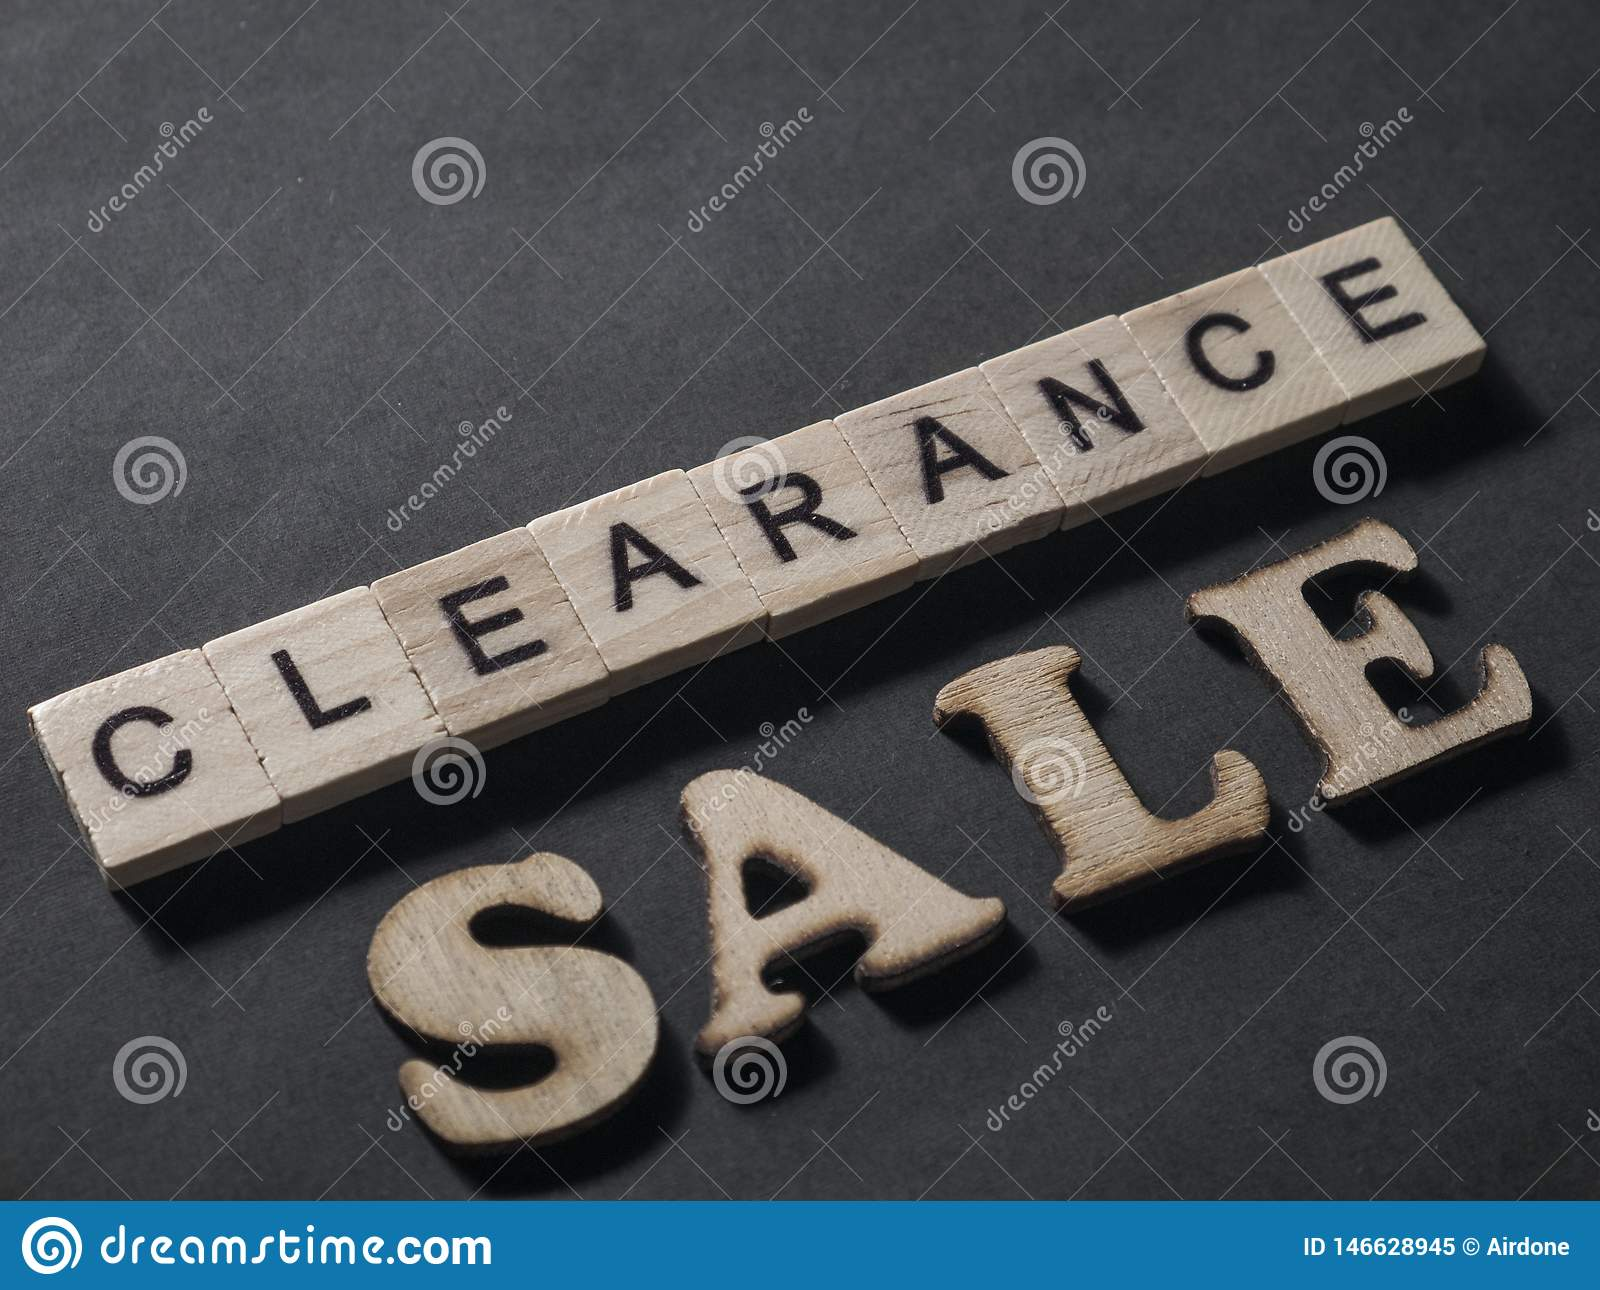 Clearance Sale, Motivational Marketing Business Words Quotes